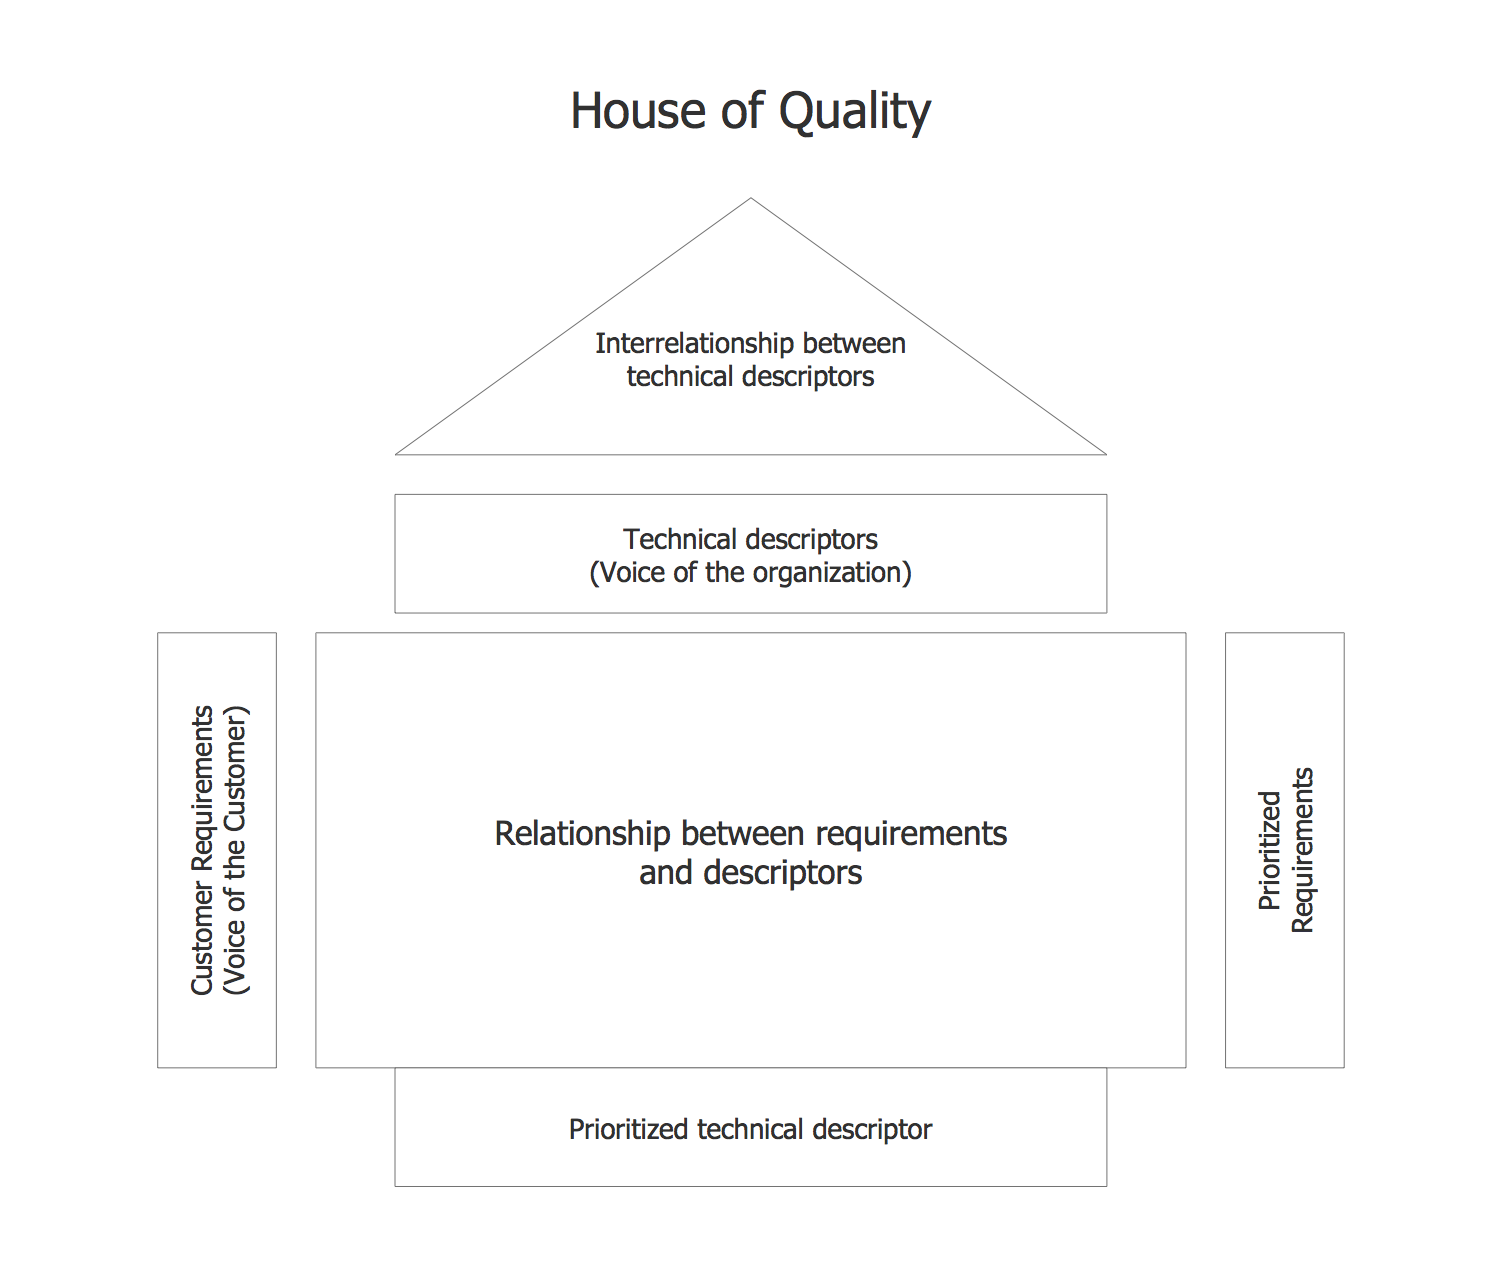 House of Quality (HOQ)